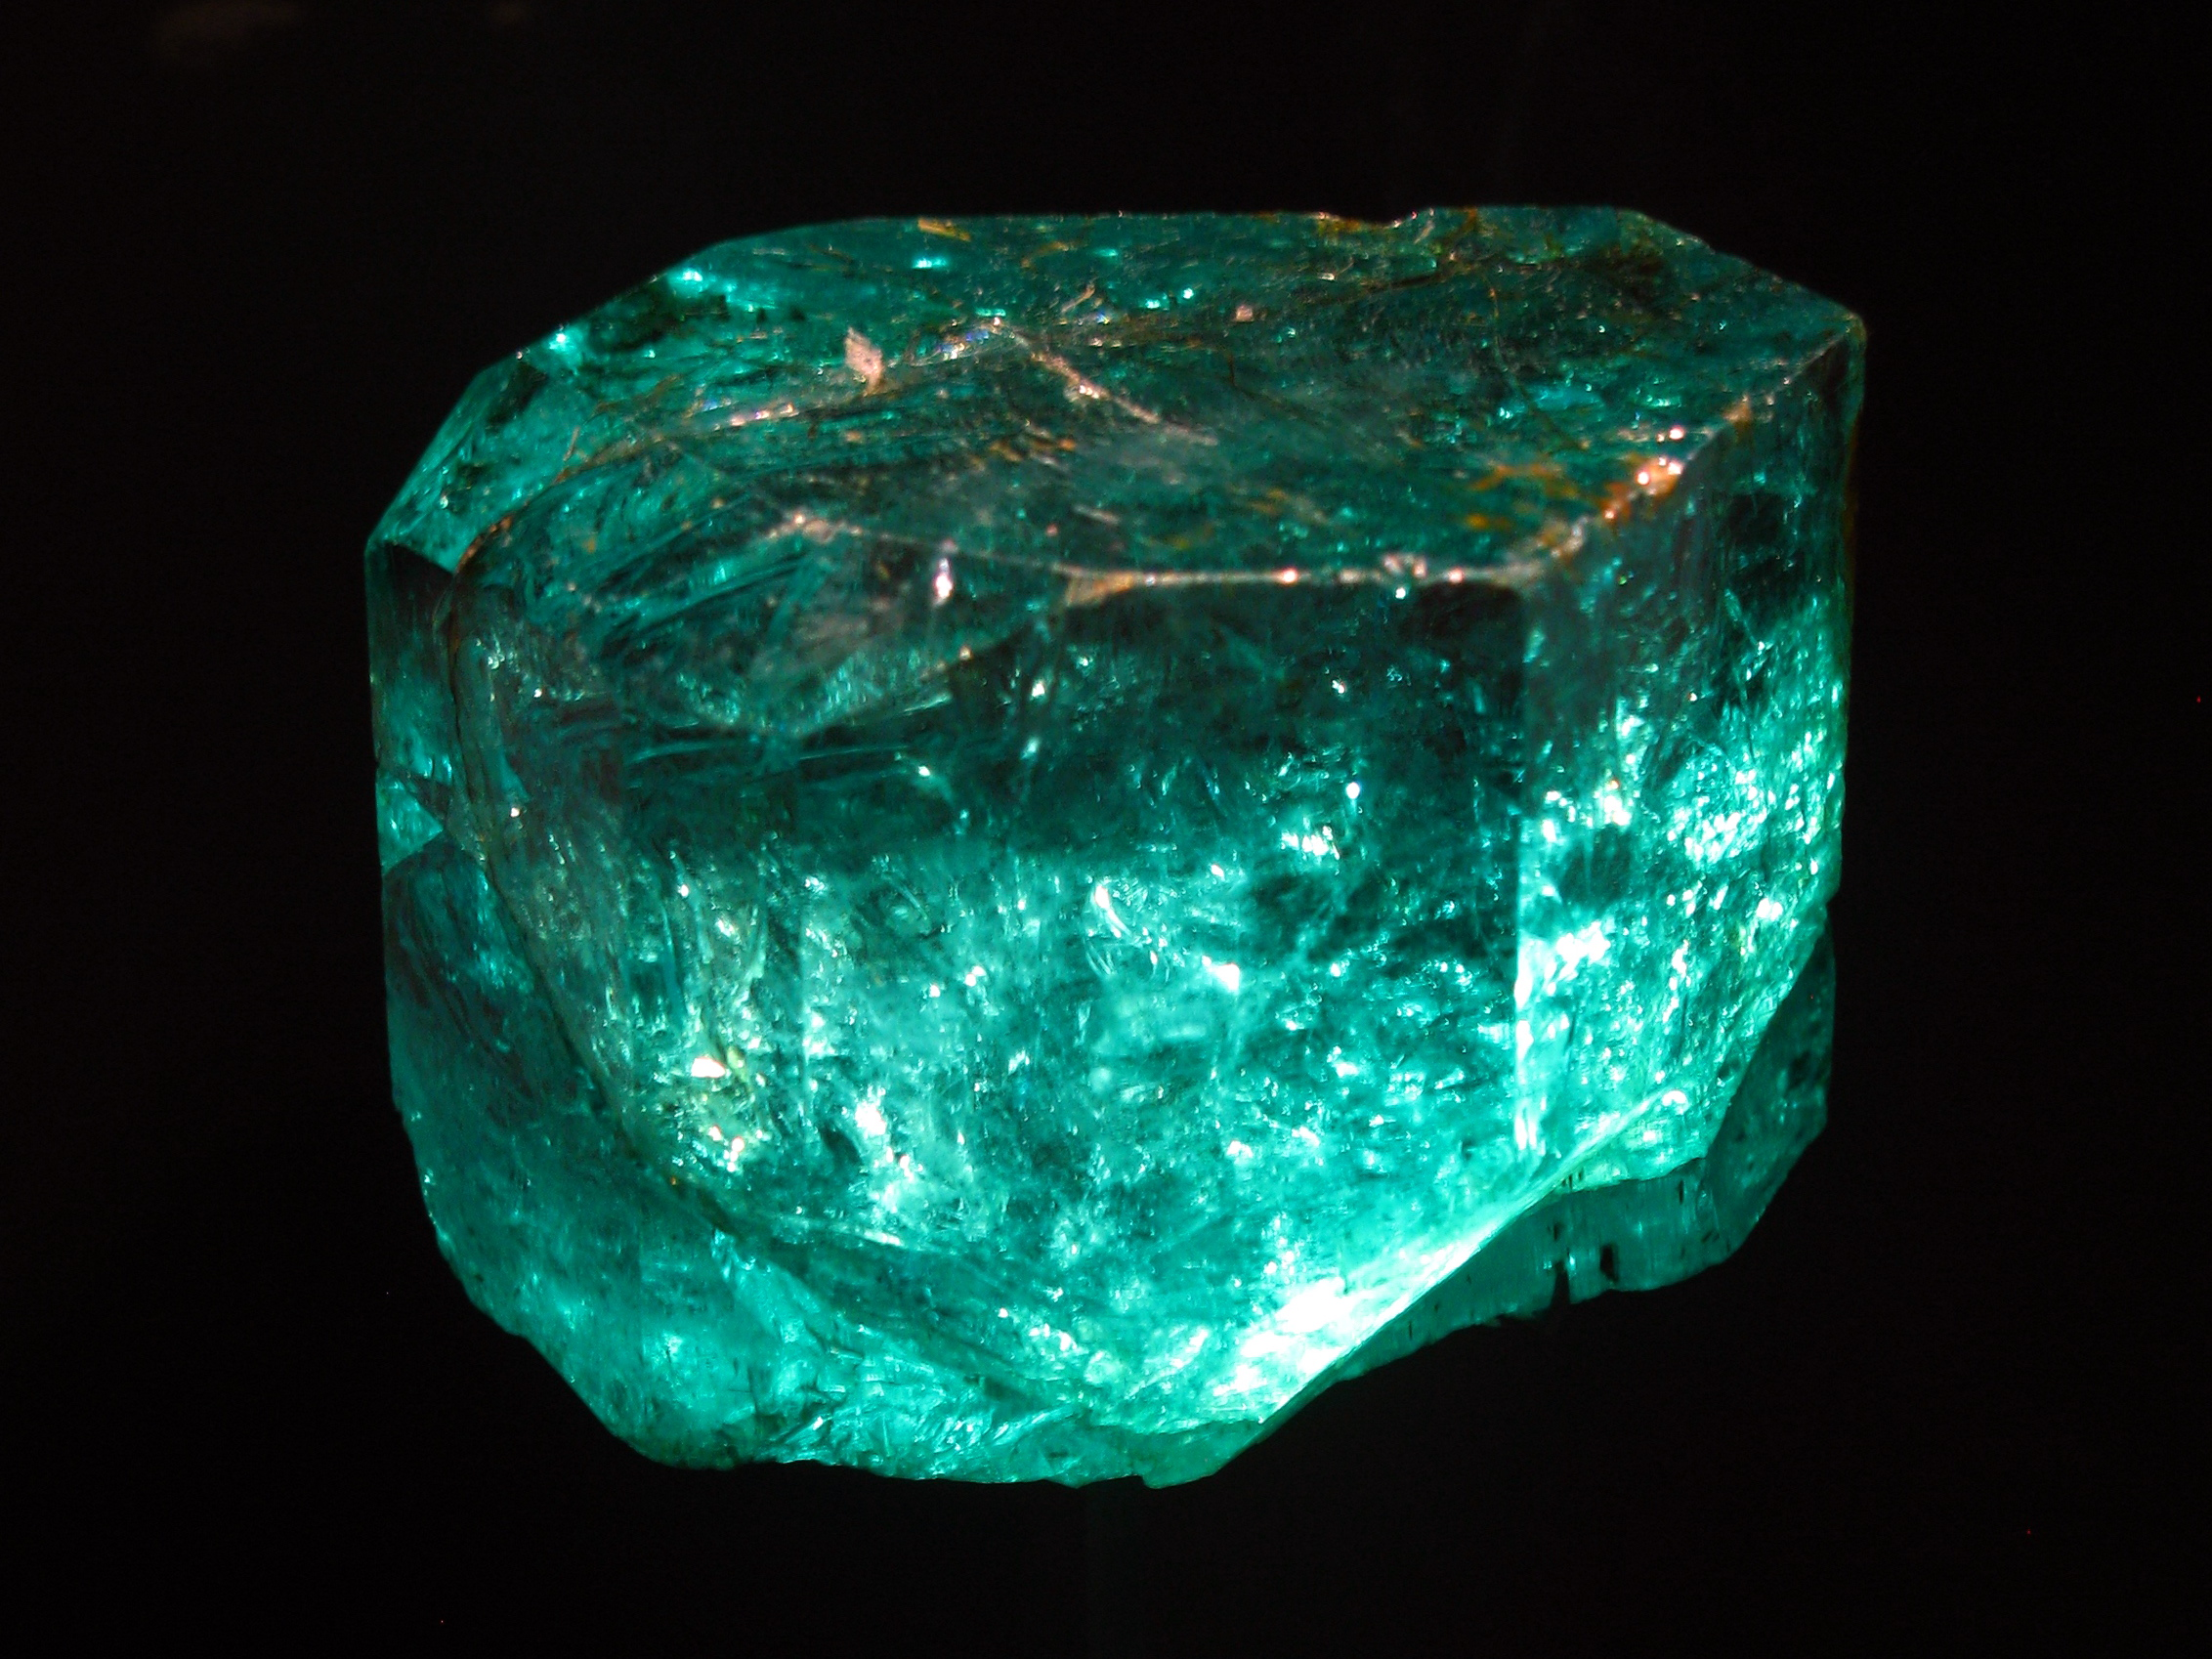 File:Gachala Emerald 3526711557 849c4c7367.jpg - Wikimedia Commons